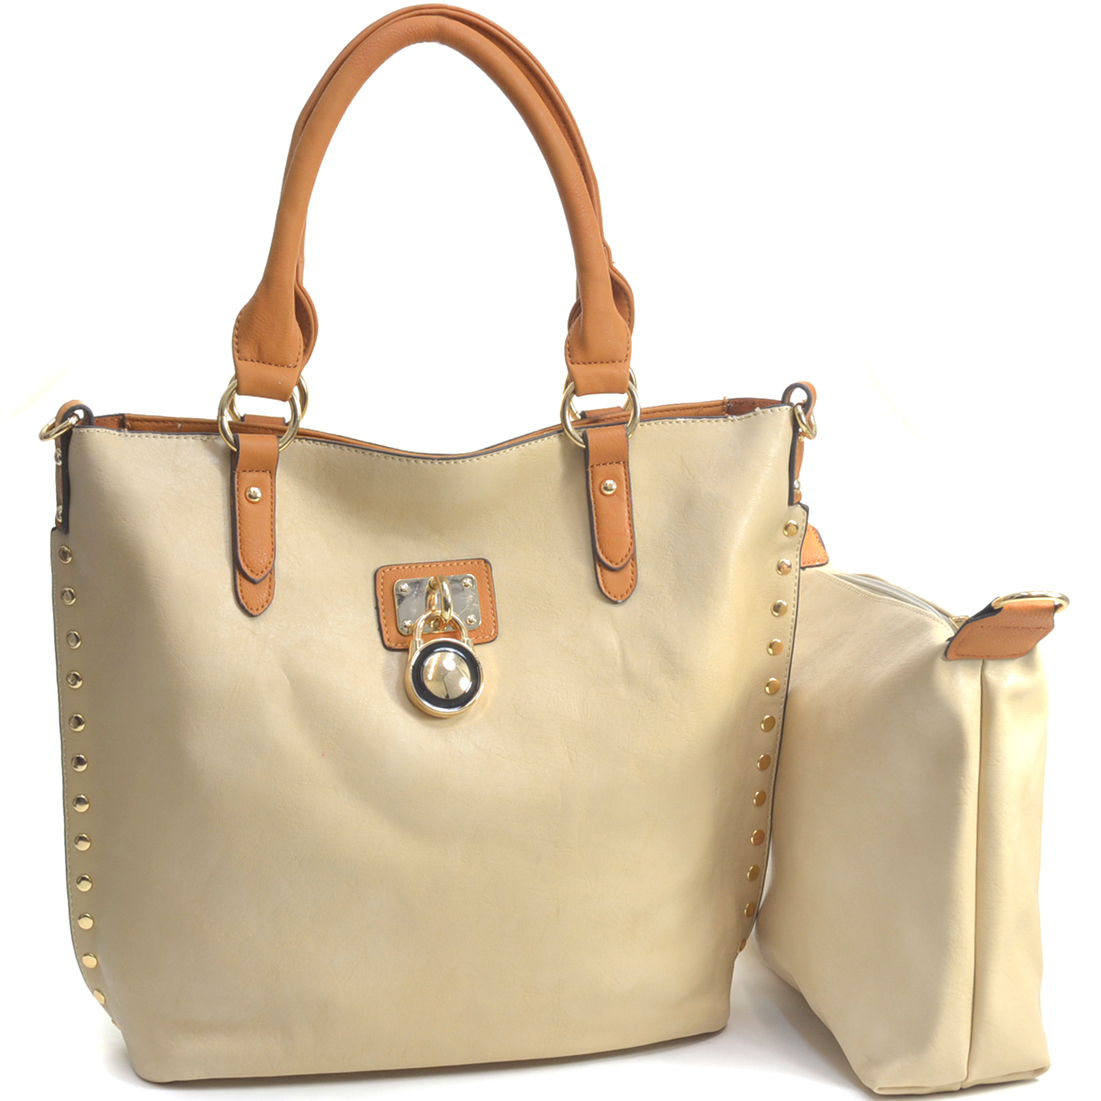 Lock Accented Faux Leather Tote Bag with Additional Detachable Makeup Bag